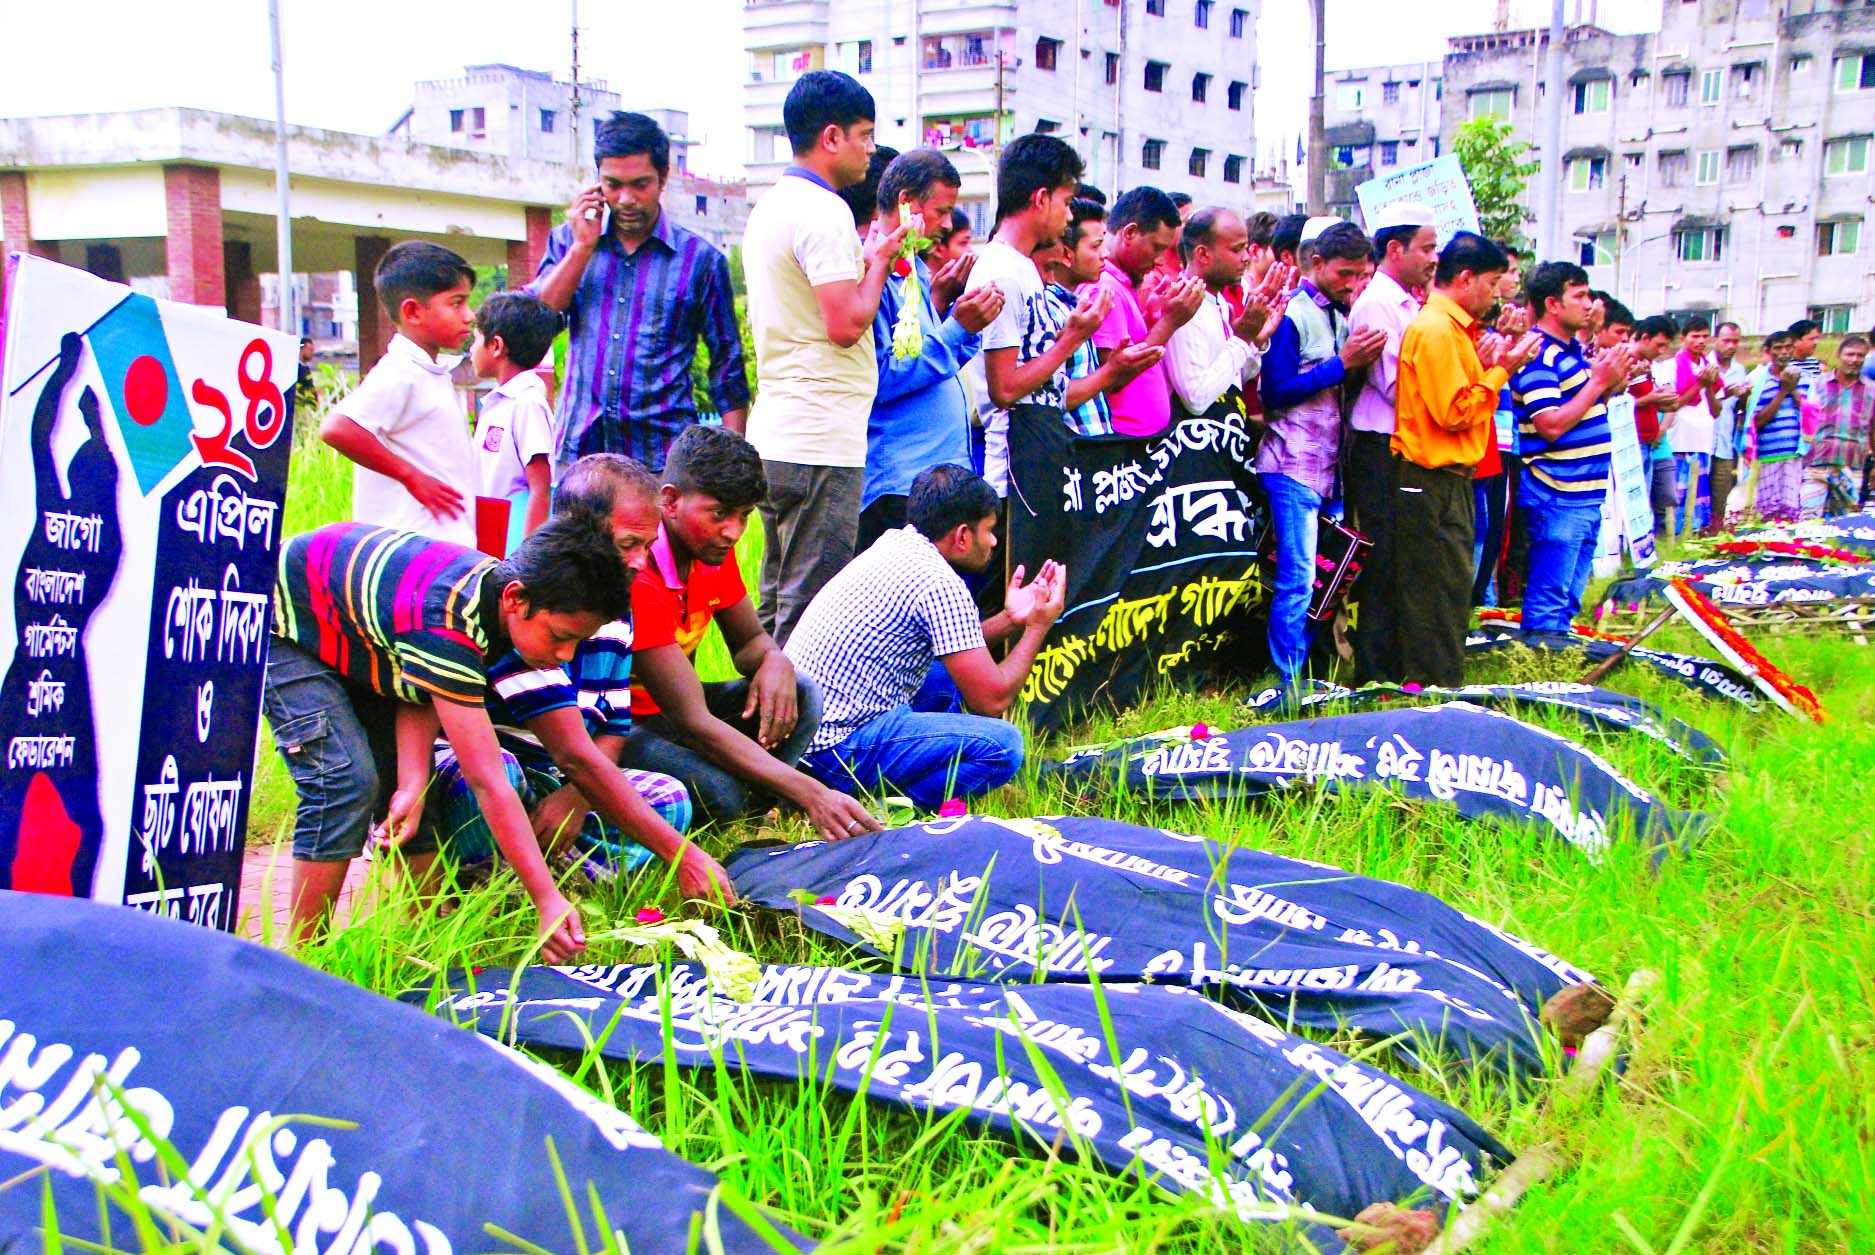 Family and relatives of the Rana Plaza victims gathered at the Jurain graveyard and offered prayers for the salvation of the departed souls on Monday. The nine-storied Rana Plaza collapsed on April 24, 2013, killing over 1,130 people mostly garment workers and injuring thousands.